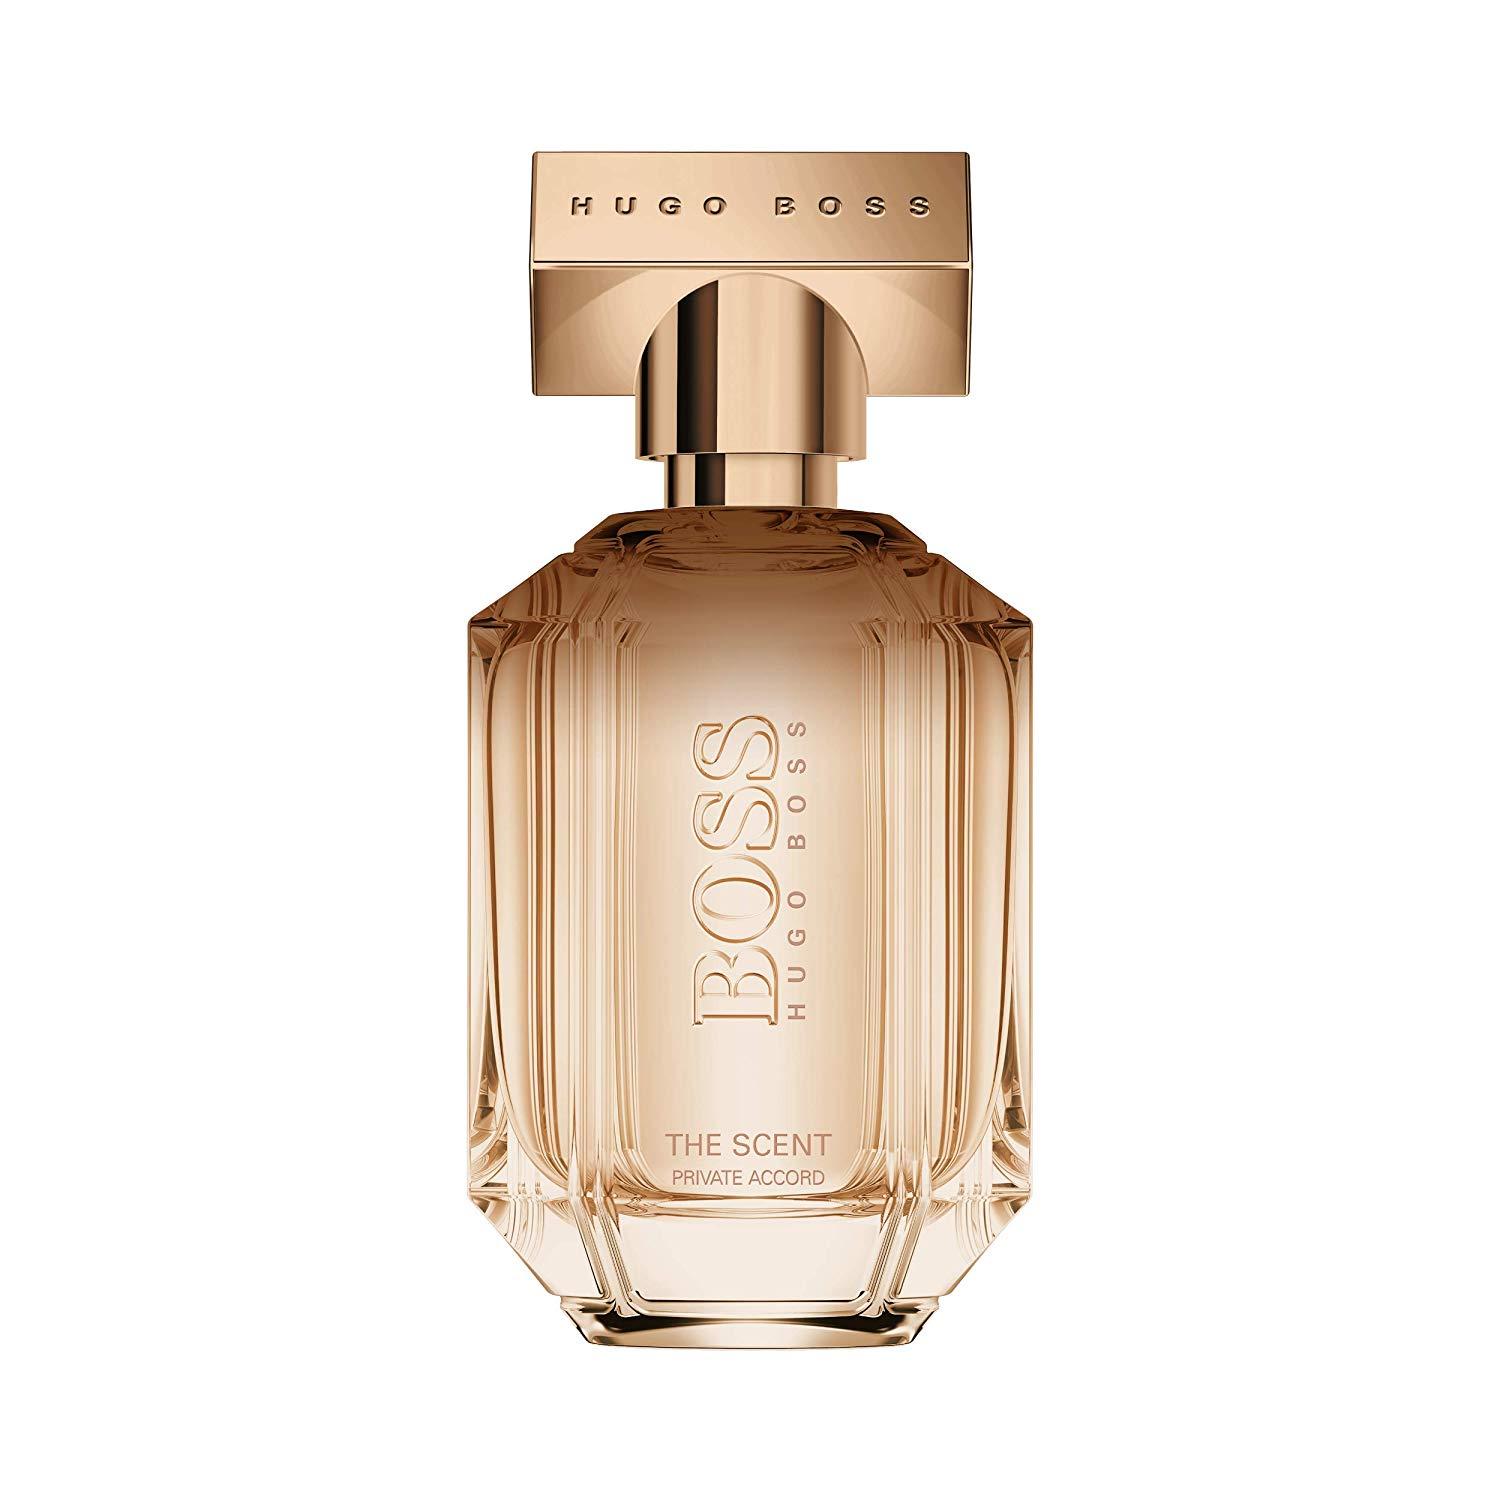 Hugo Boss The Scent Private Accord - Eau De Parfum For Women